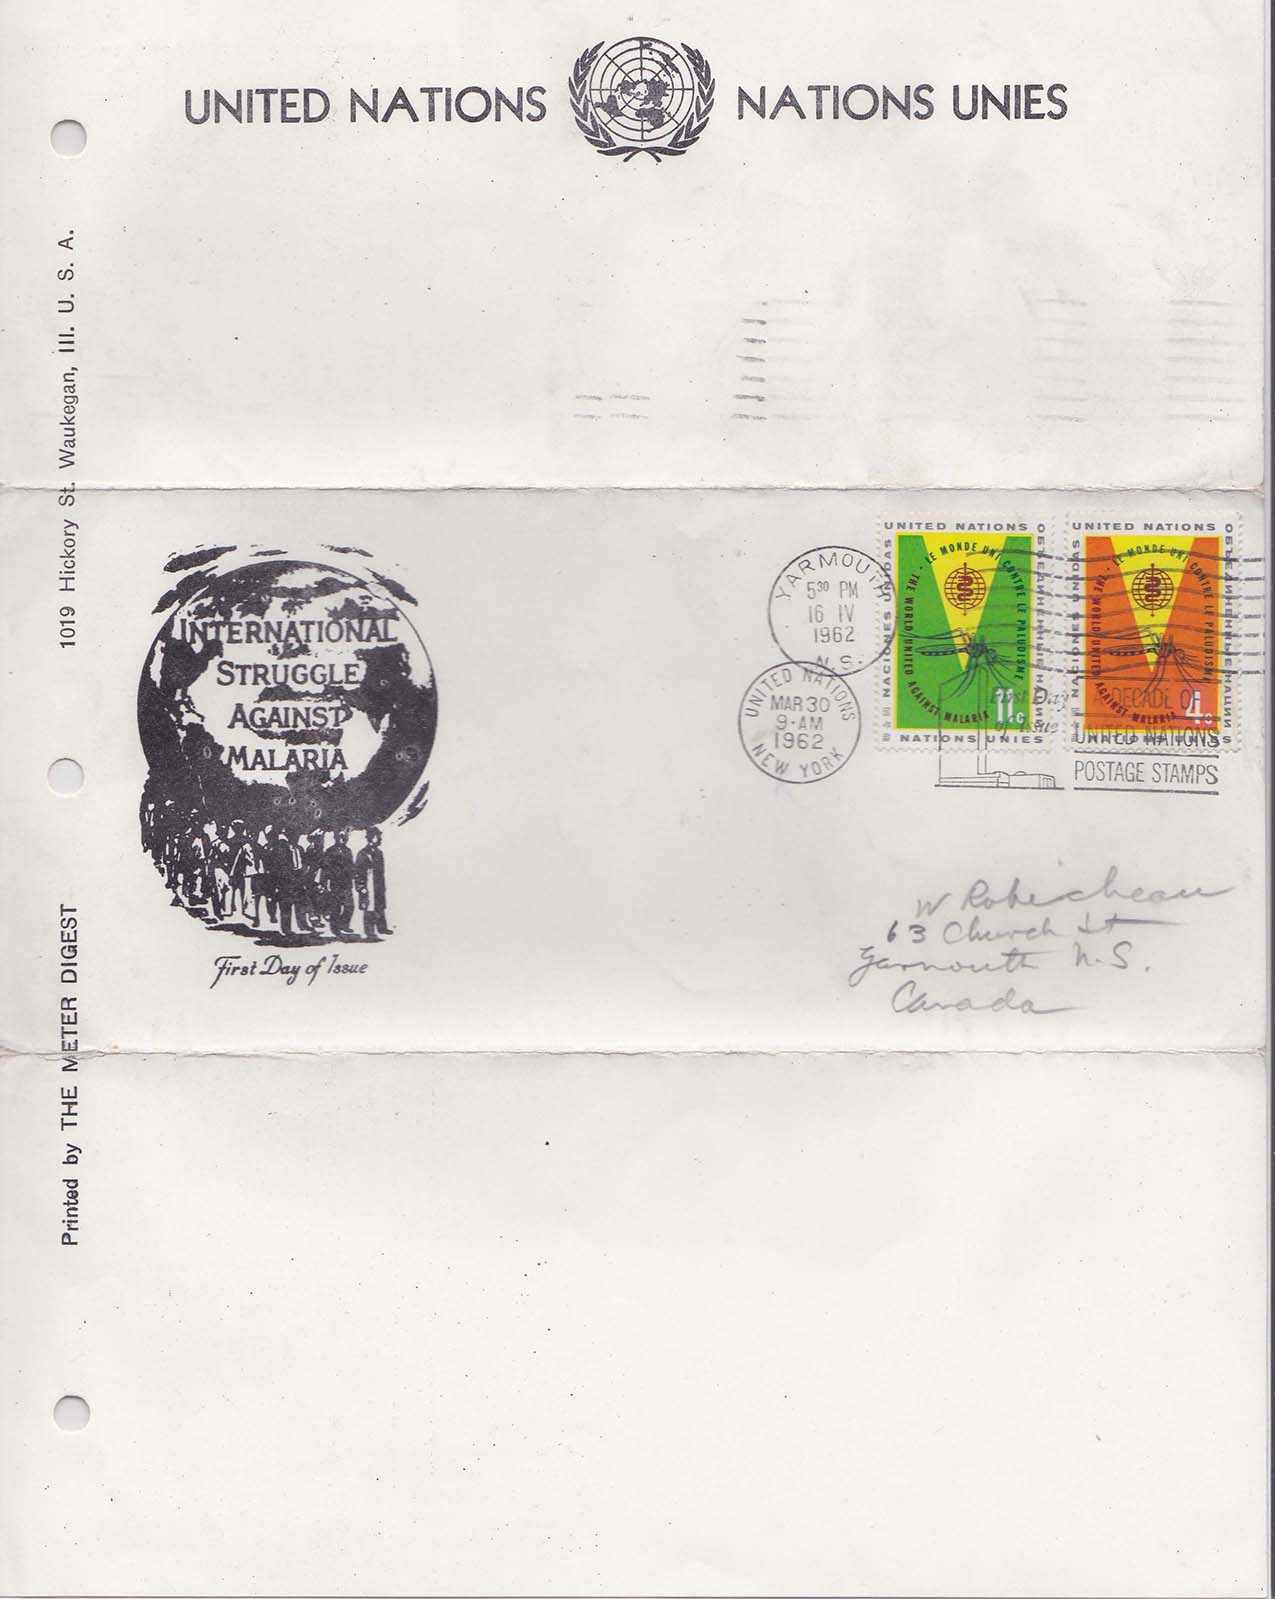 United Nations Scott 102-103<br />(FDC w/ Meter Digest Cachet - Counterfeit Artmaster Cachet imprinted on an Album Page)